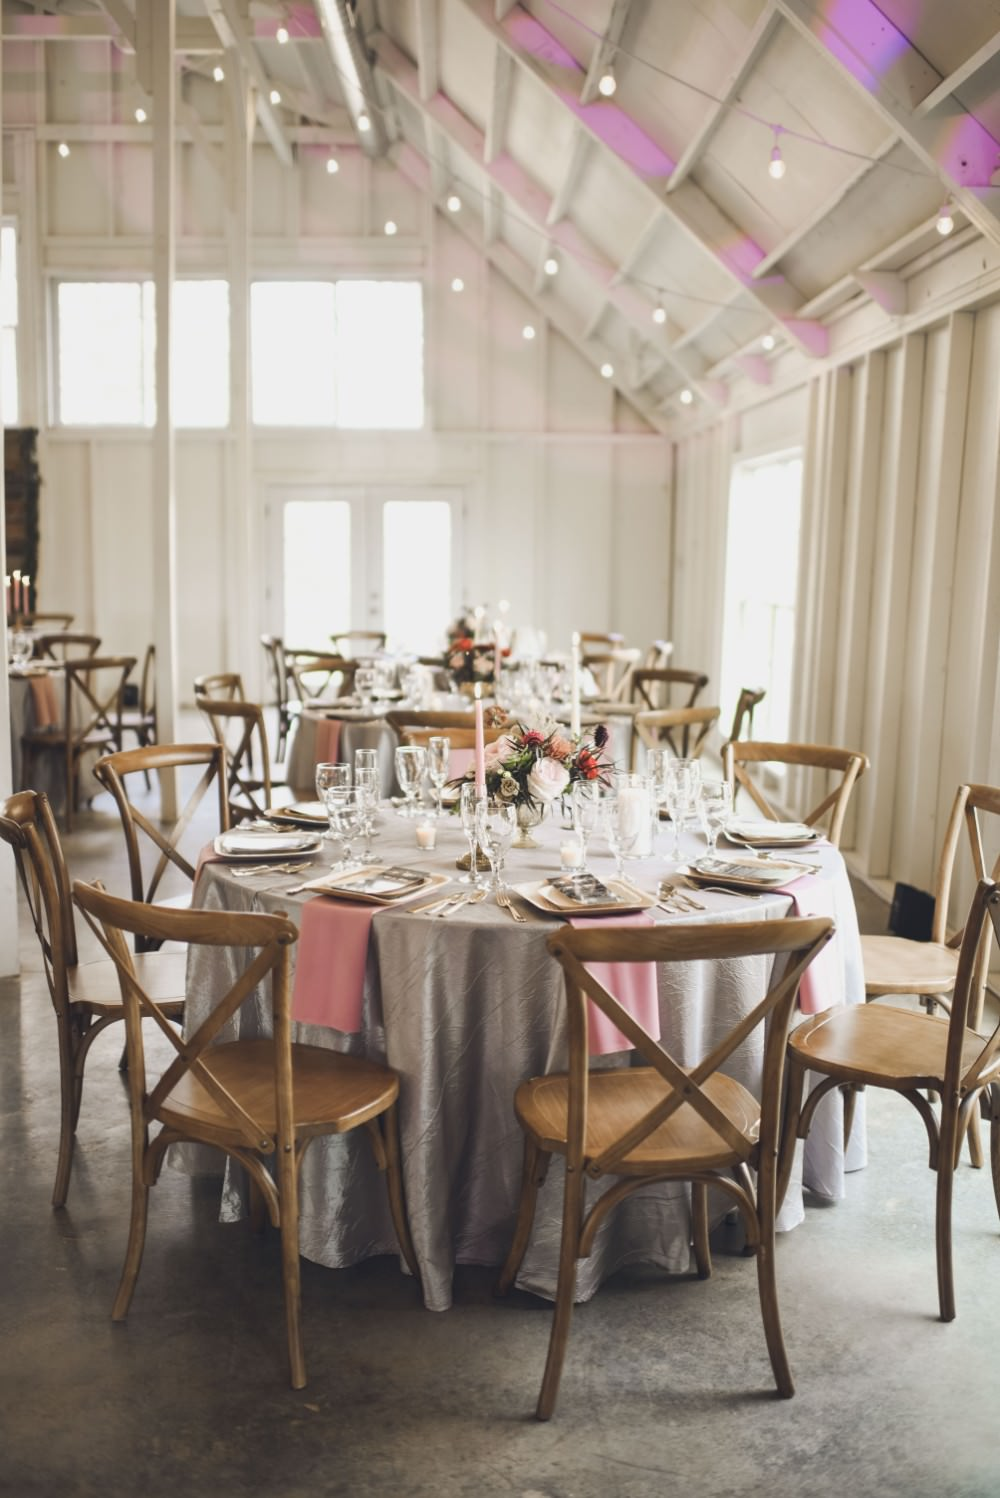 Table Decor Tablescape Flowers Pink Grey Flowers Centrepiece Candles Festoon Lights Kindred Barn Wedding The Kindred Collective